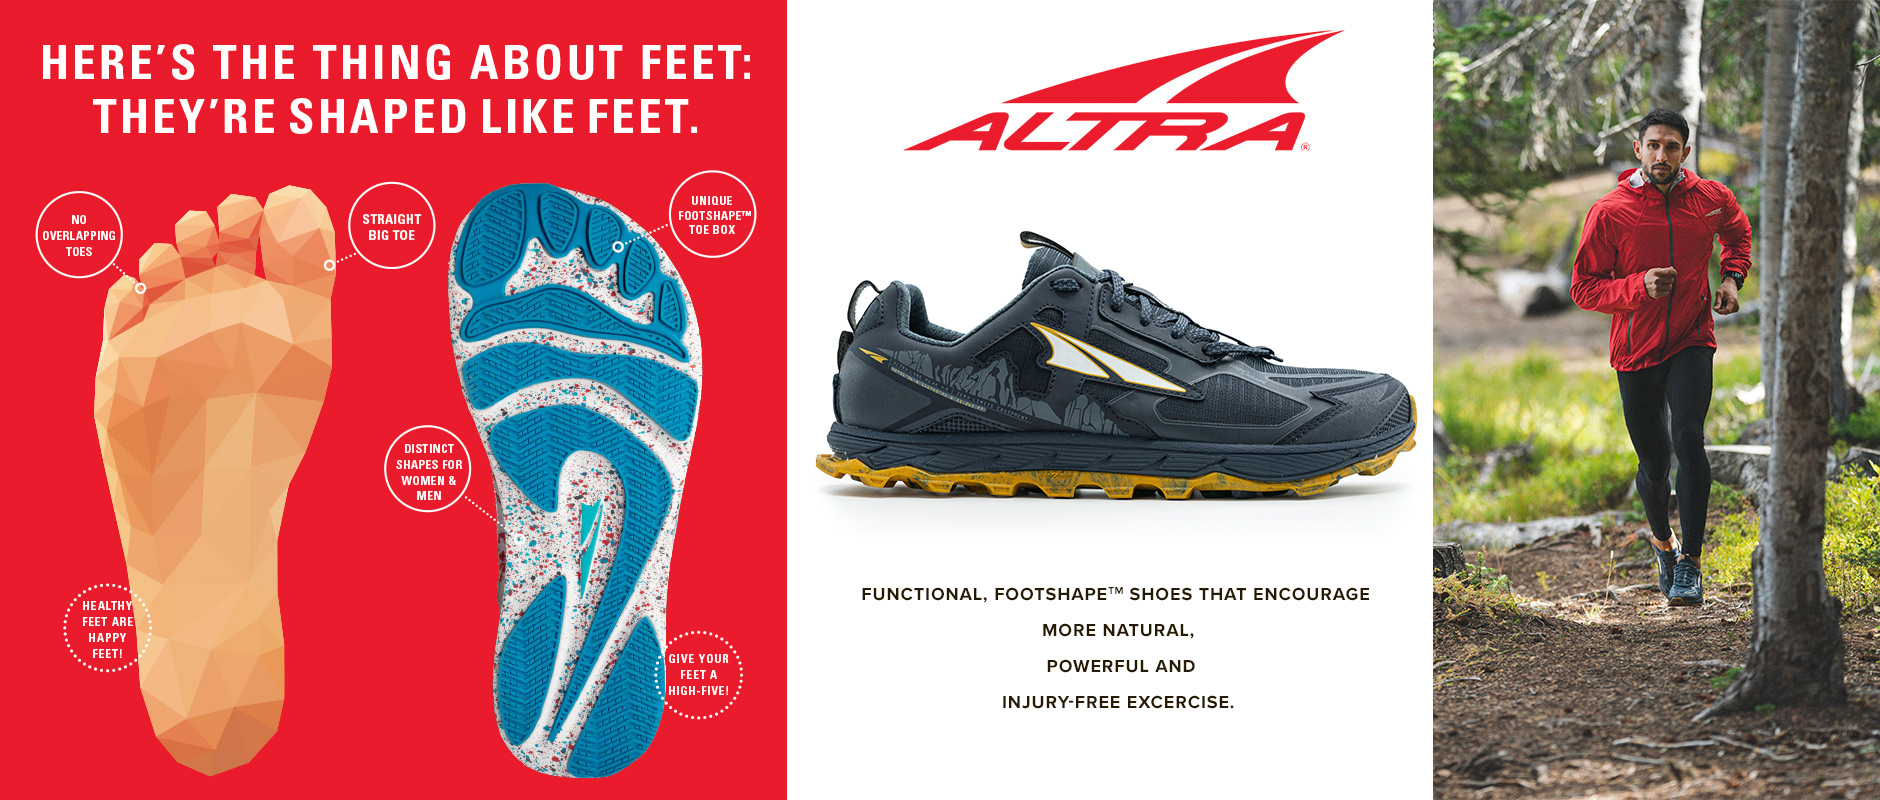 Introducing Altra